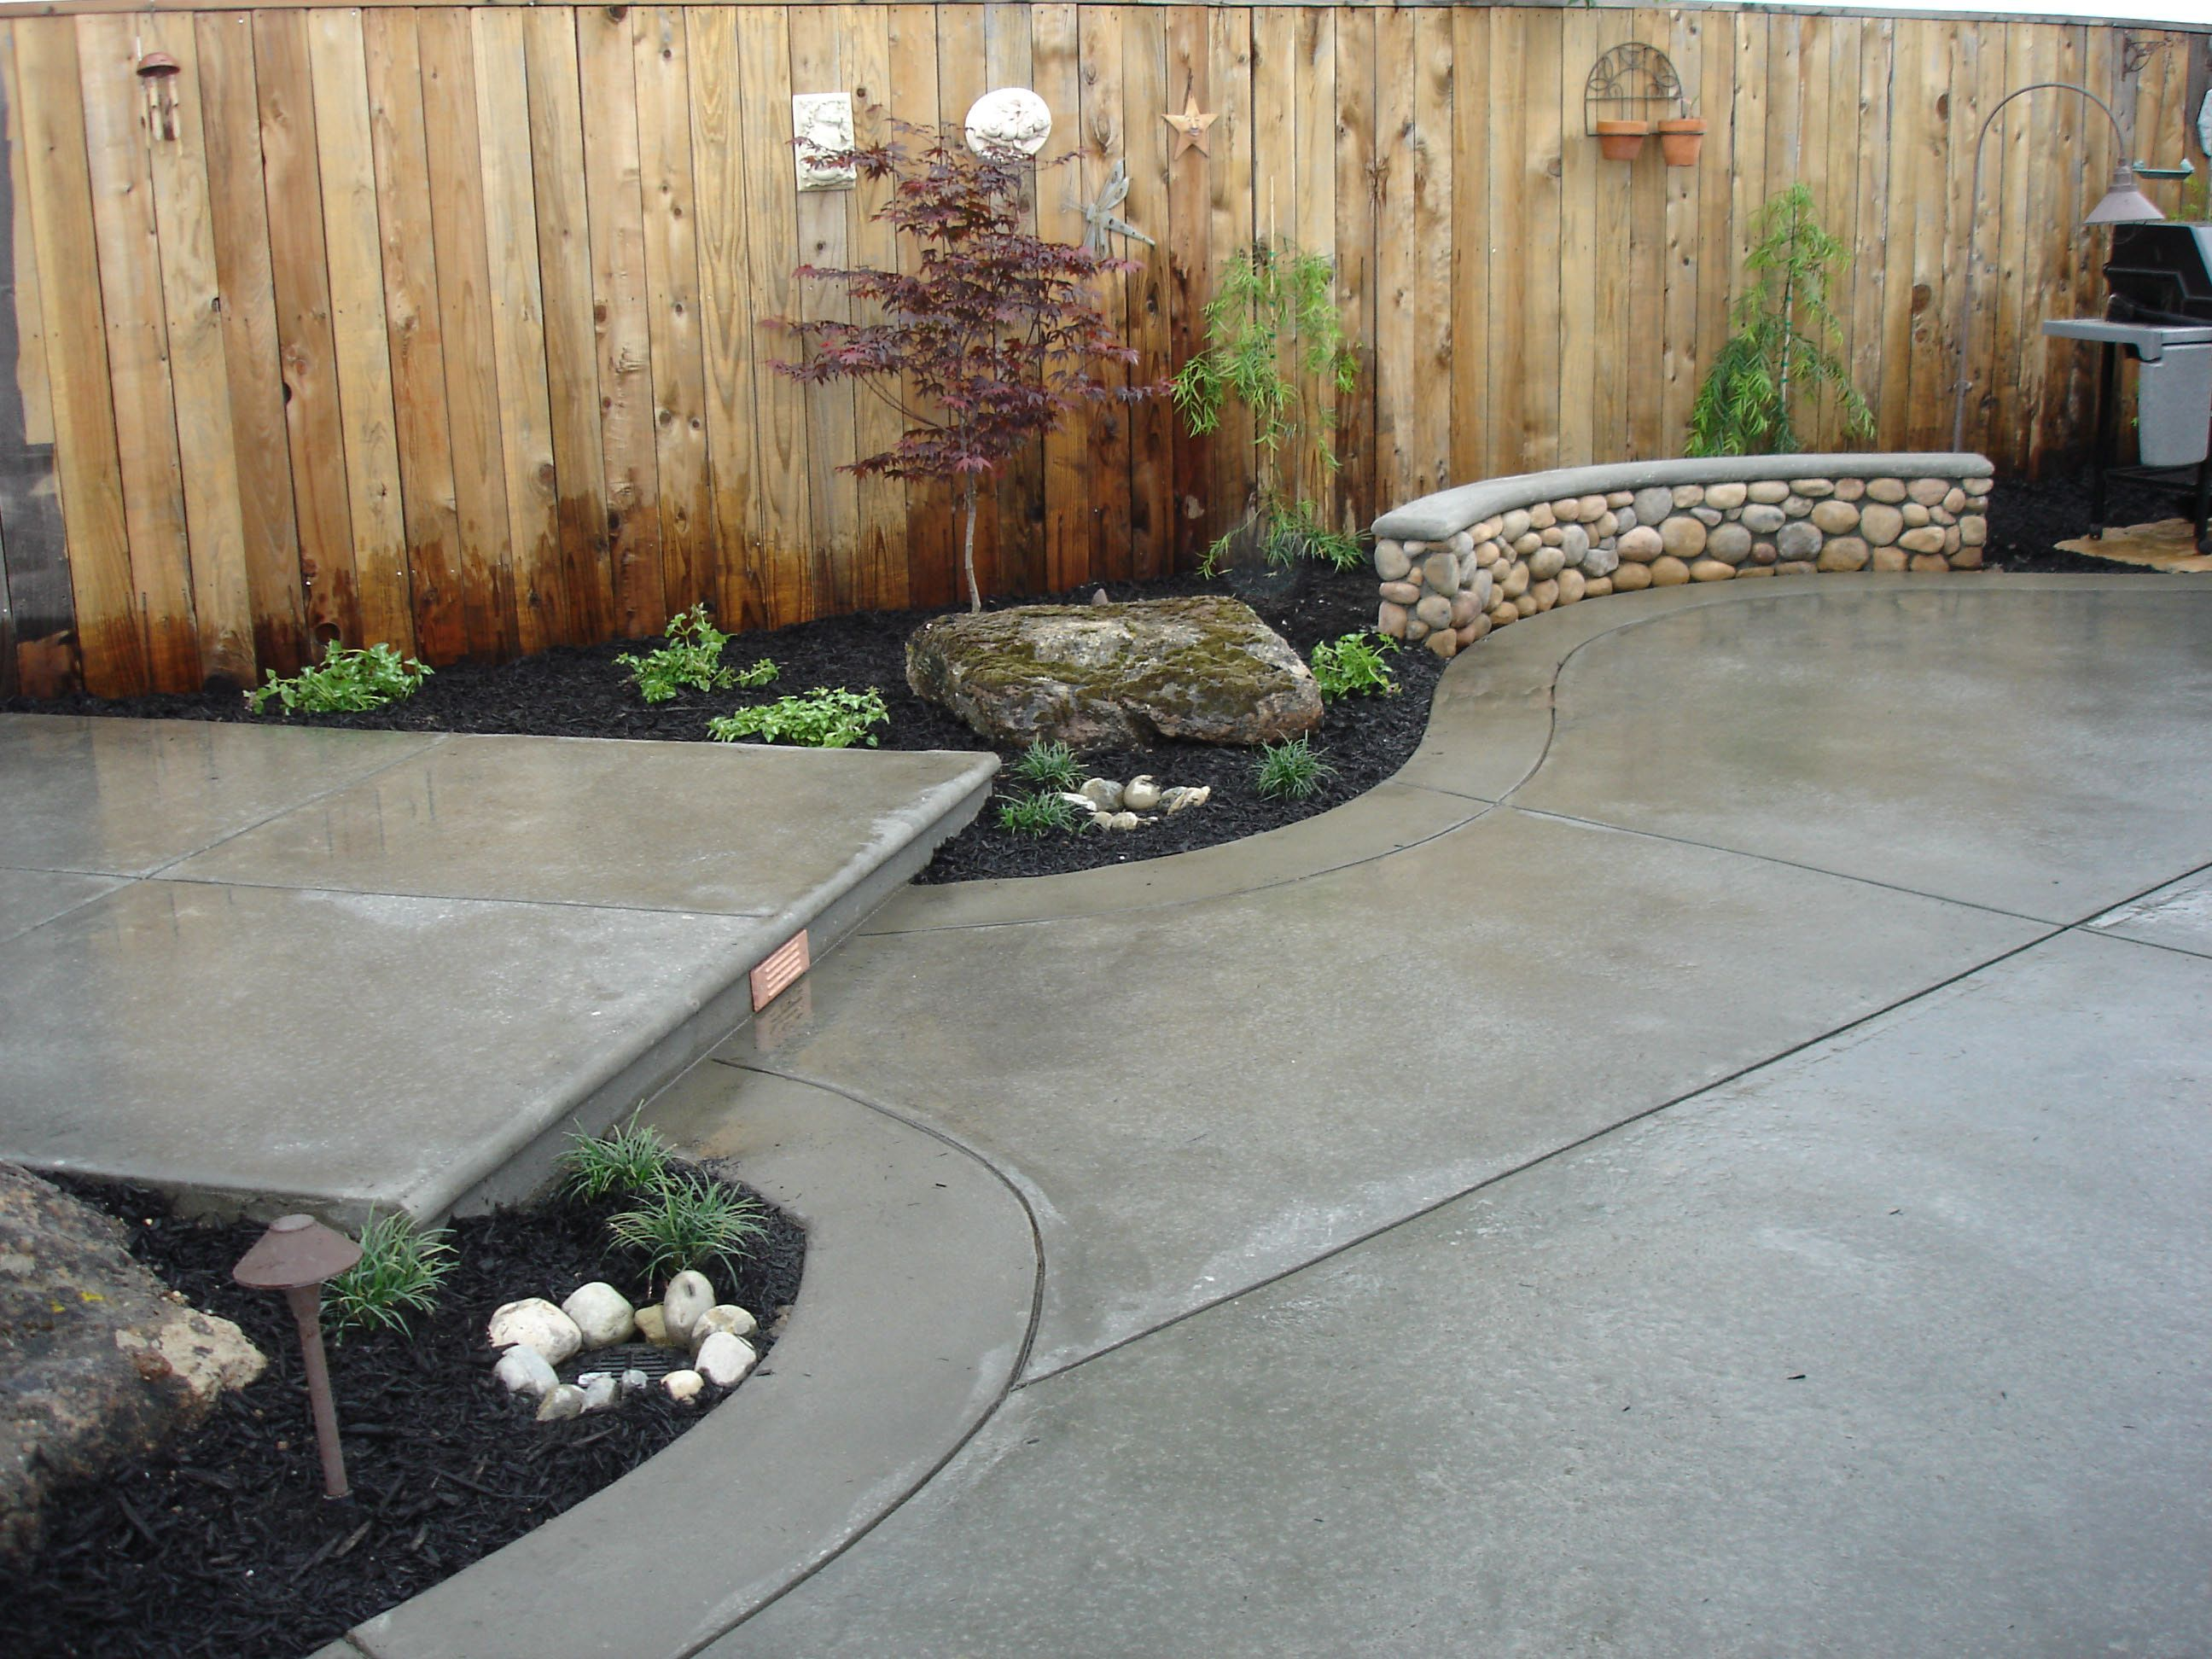 Concrete Finishes For Patios And Walkways Broom Finish Concrete - Backyard concrete ideas